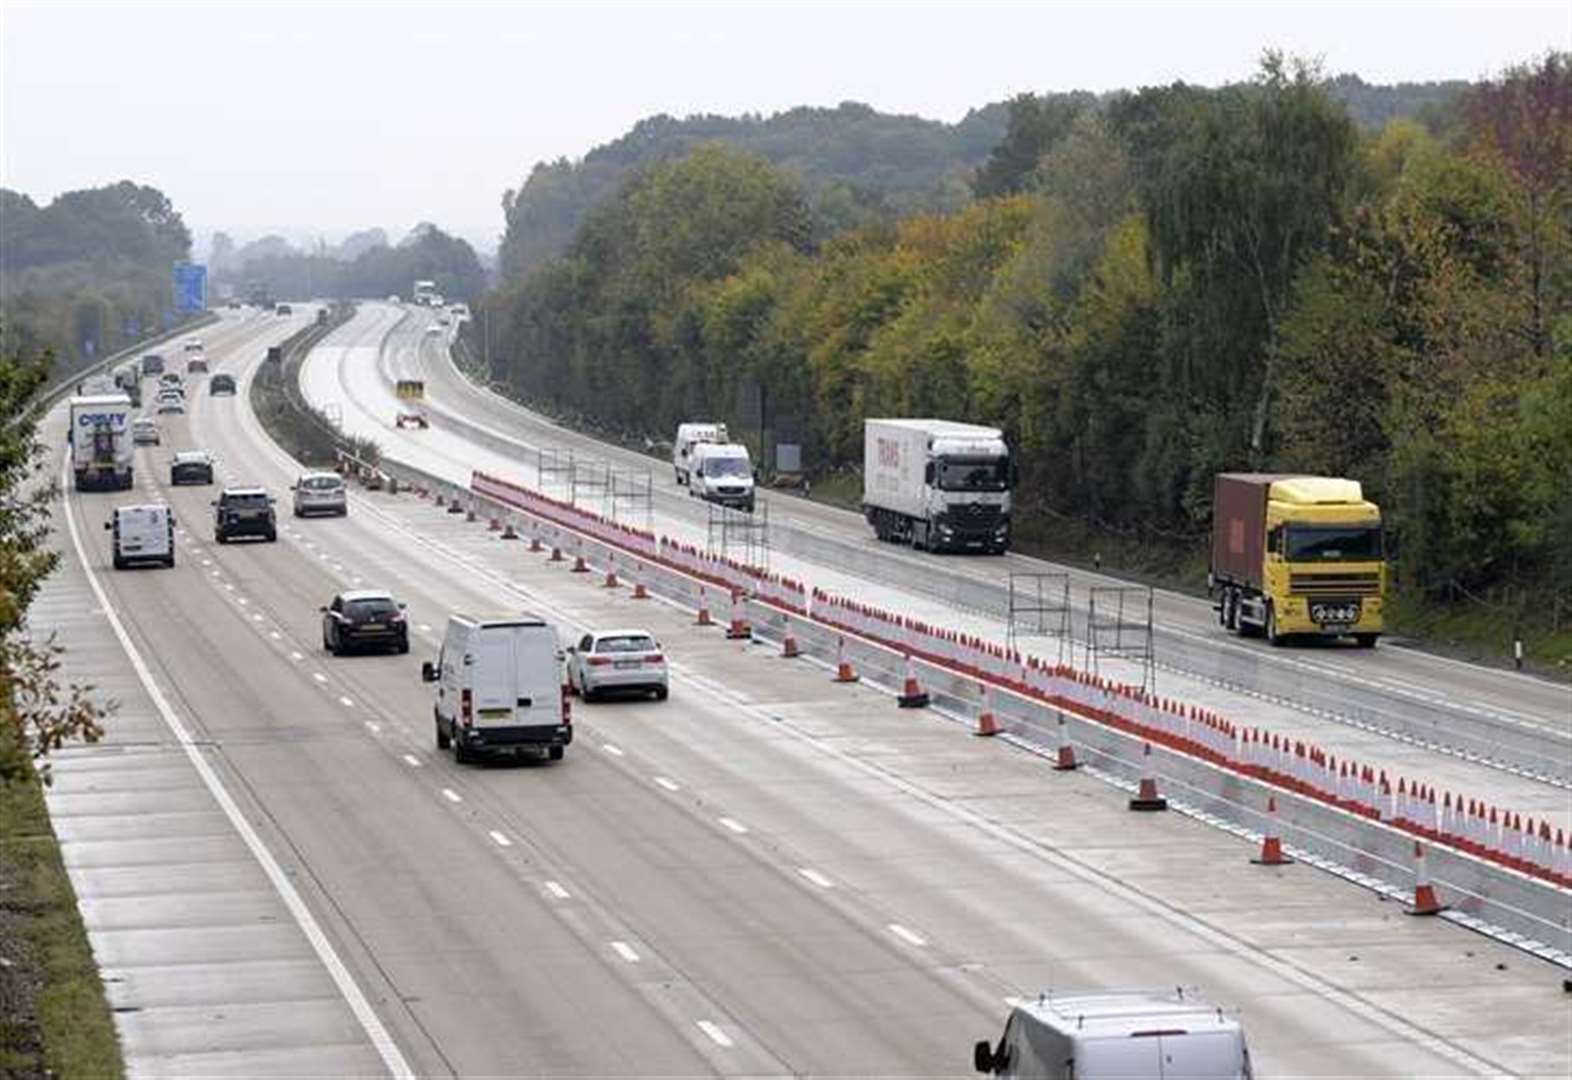 Work starting to dismantle M20 barrier